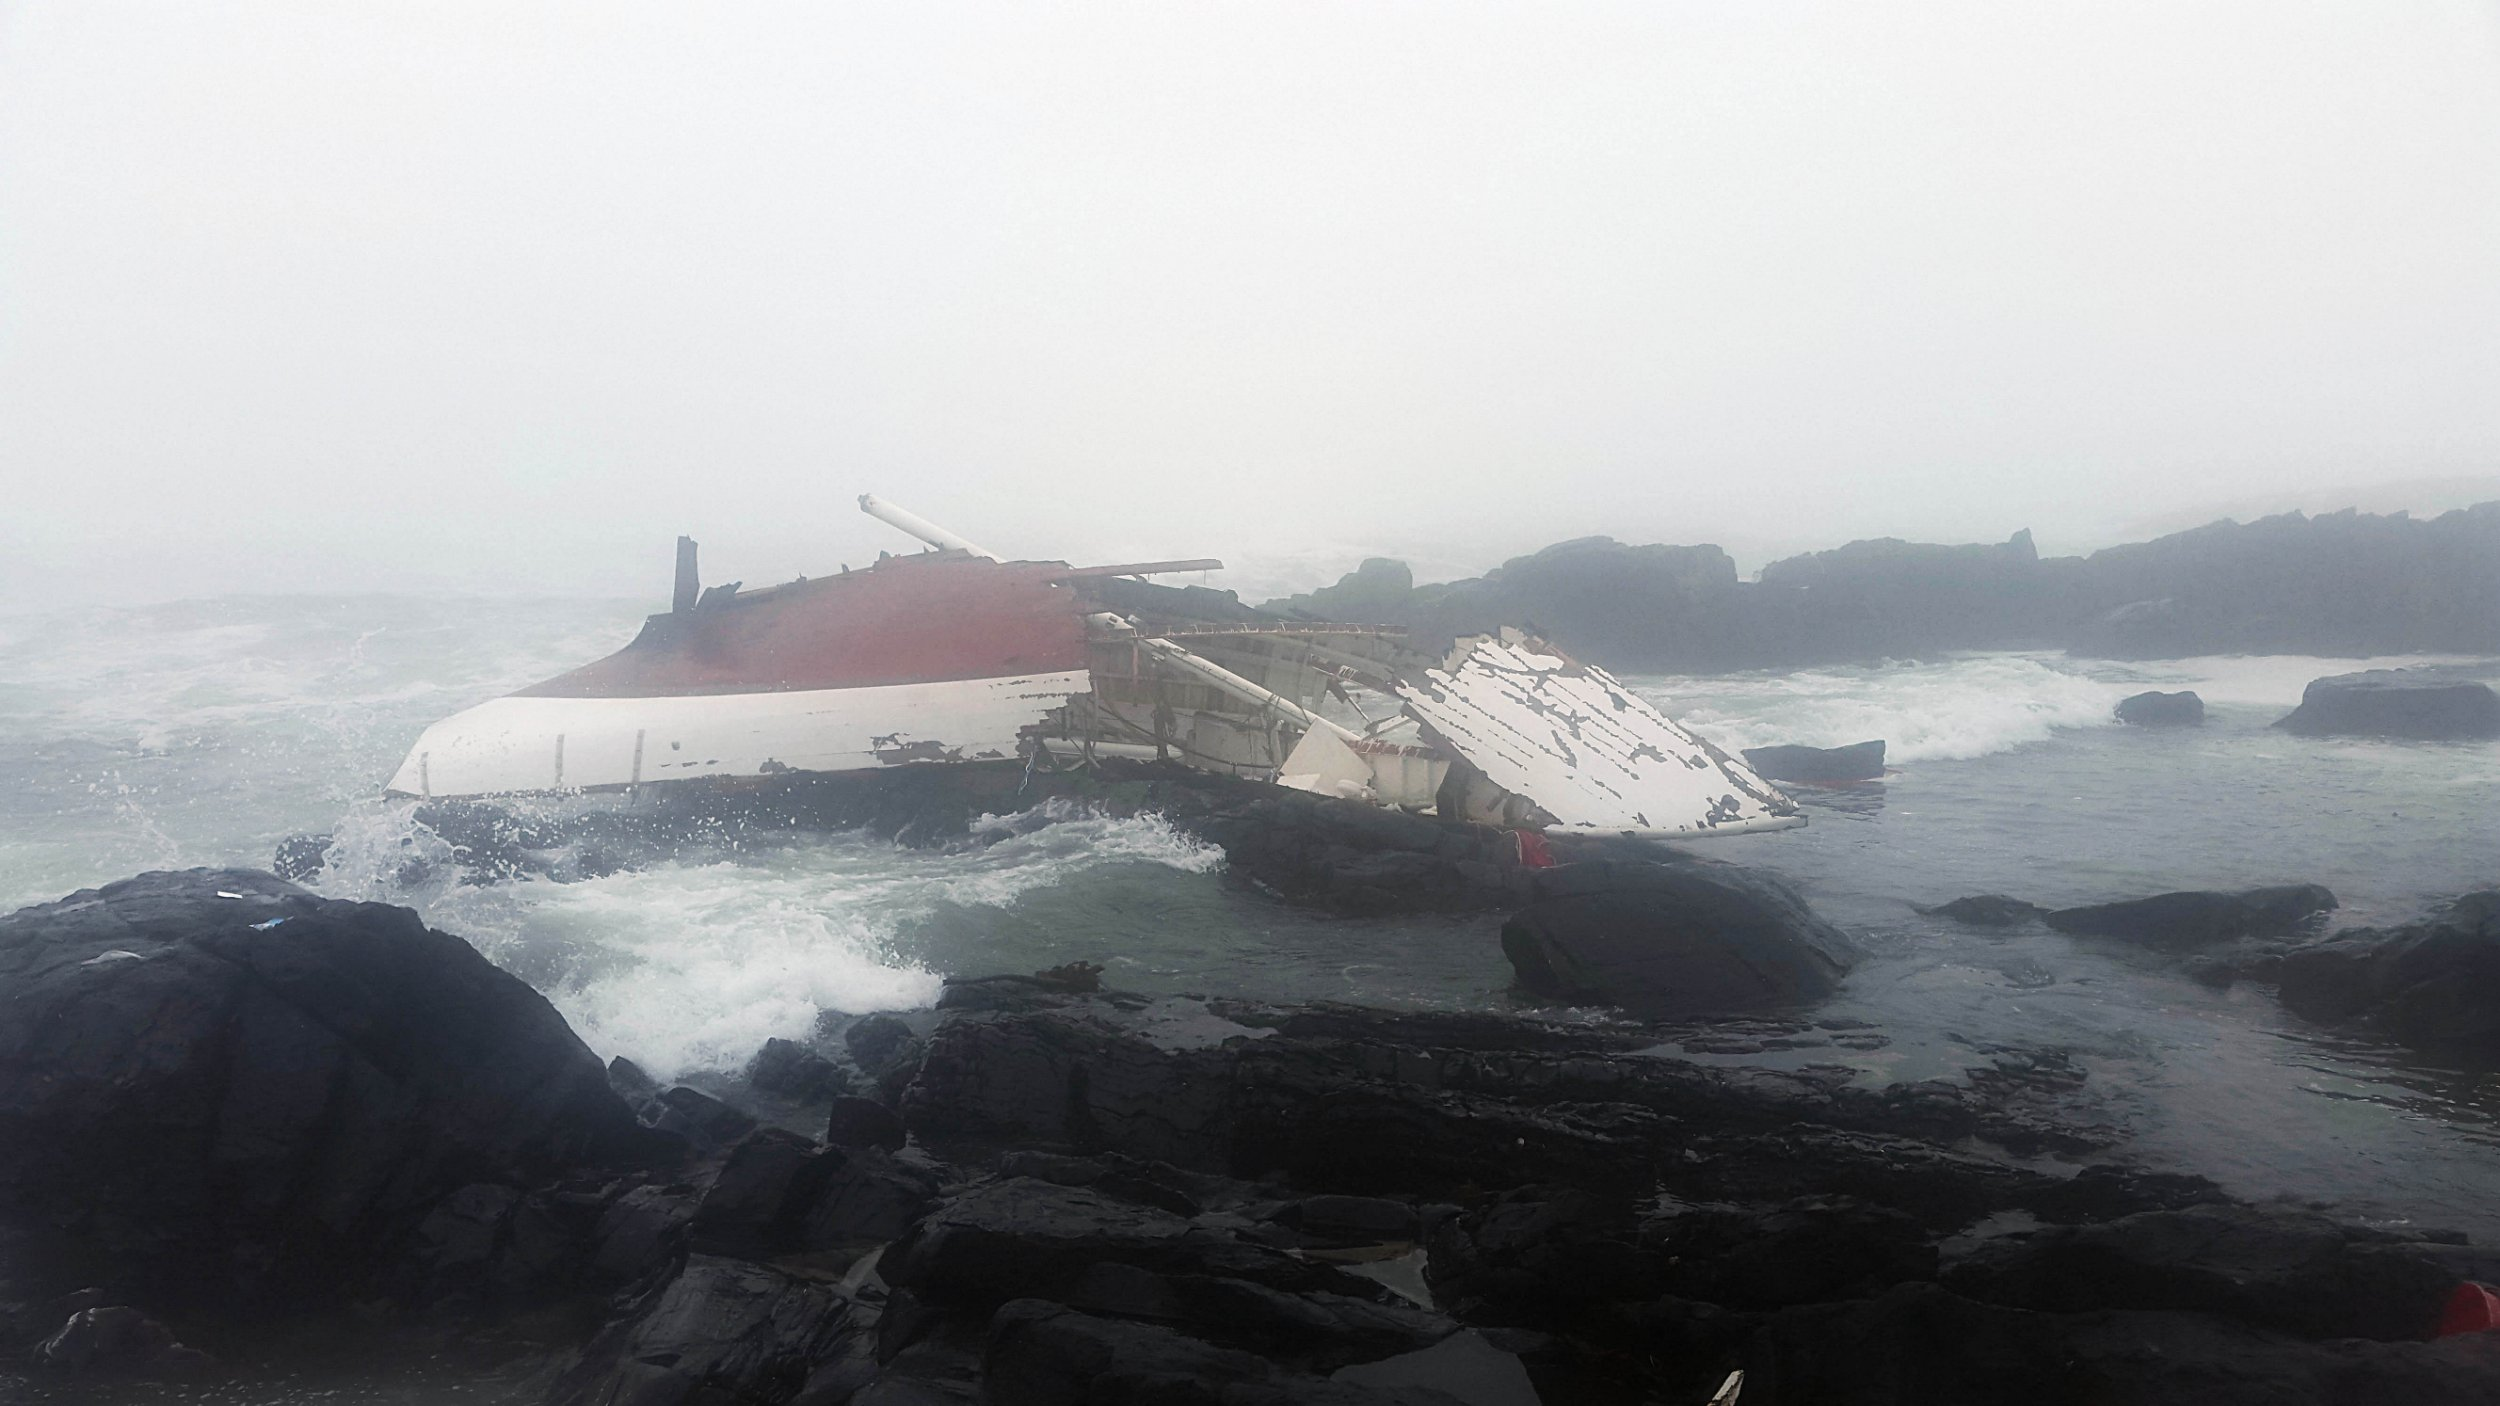 BEST QUALITY AVAILABLE Undated handout photo issued by the National Sea Rescue Institute South Africa of a Yacht which ran into trouble and was found crashed into rocks on the western coast of South Africa, as a Scottish man and an Irish woman have died. PRESS ASSOCIATION Photo. Issue date: Tuesday February 2, 2016. The NSRI received reports that a yacht had capsized between Bokpunt and Gansekraal on the Western Cape just after 4.30am on Monday. See PA story DEATH Yacht. Photo credit should read: NSRI/PA Wire NOTE TO EDITORS: This handout photo may only be used in for editorial reporting purposes for the contemporaneous illustration of events, things or the people in the image or facts mentioned in the caption. Reuse of the picture may require further permission from the copyright holder.